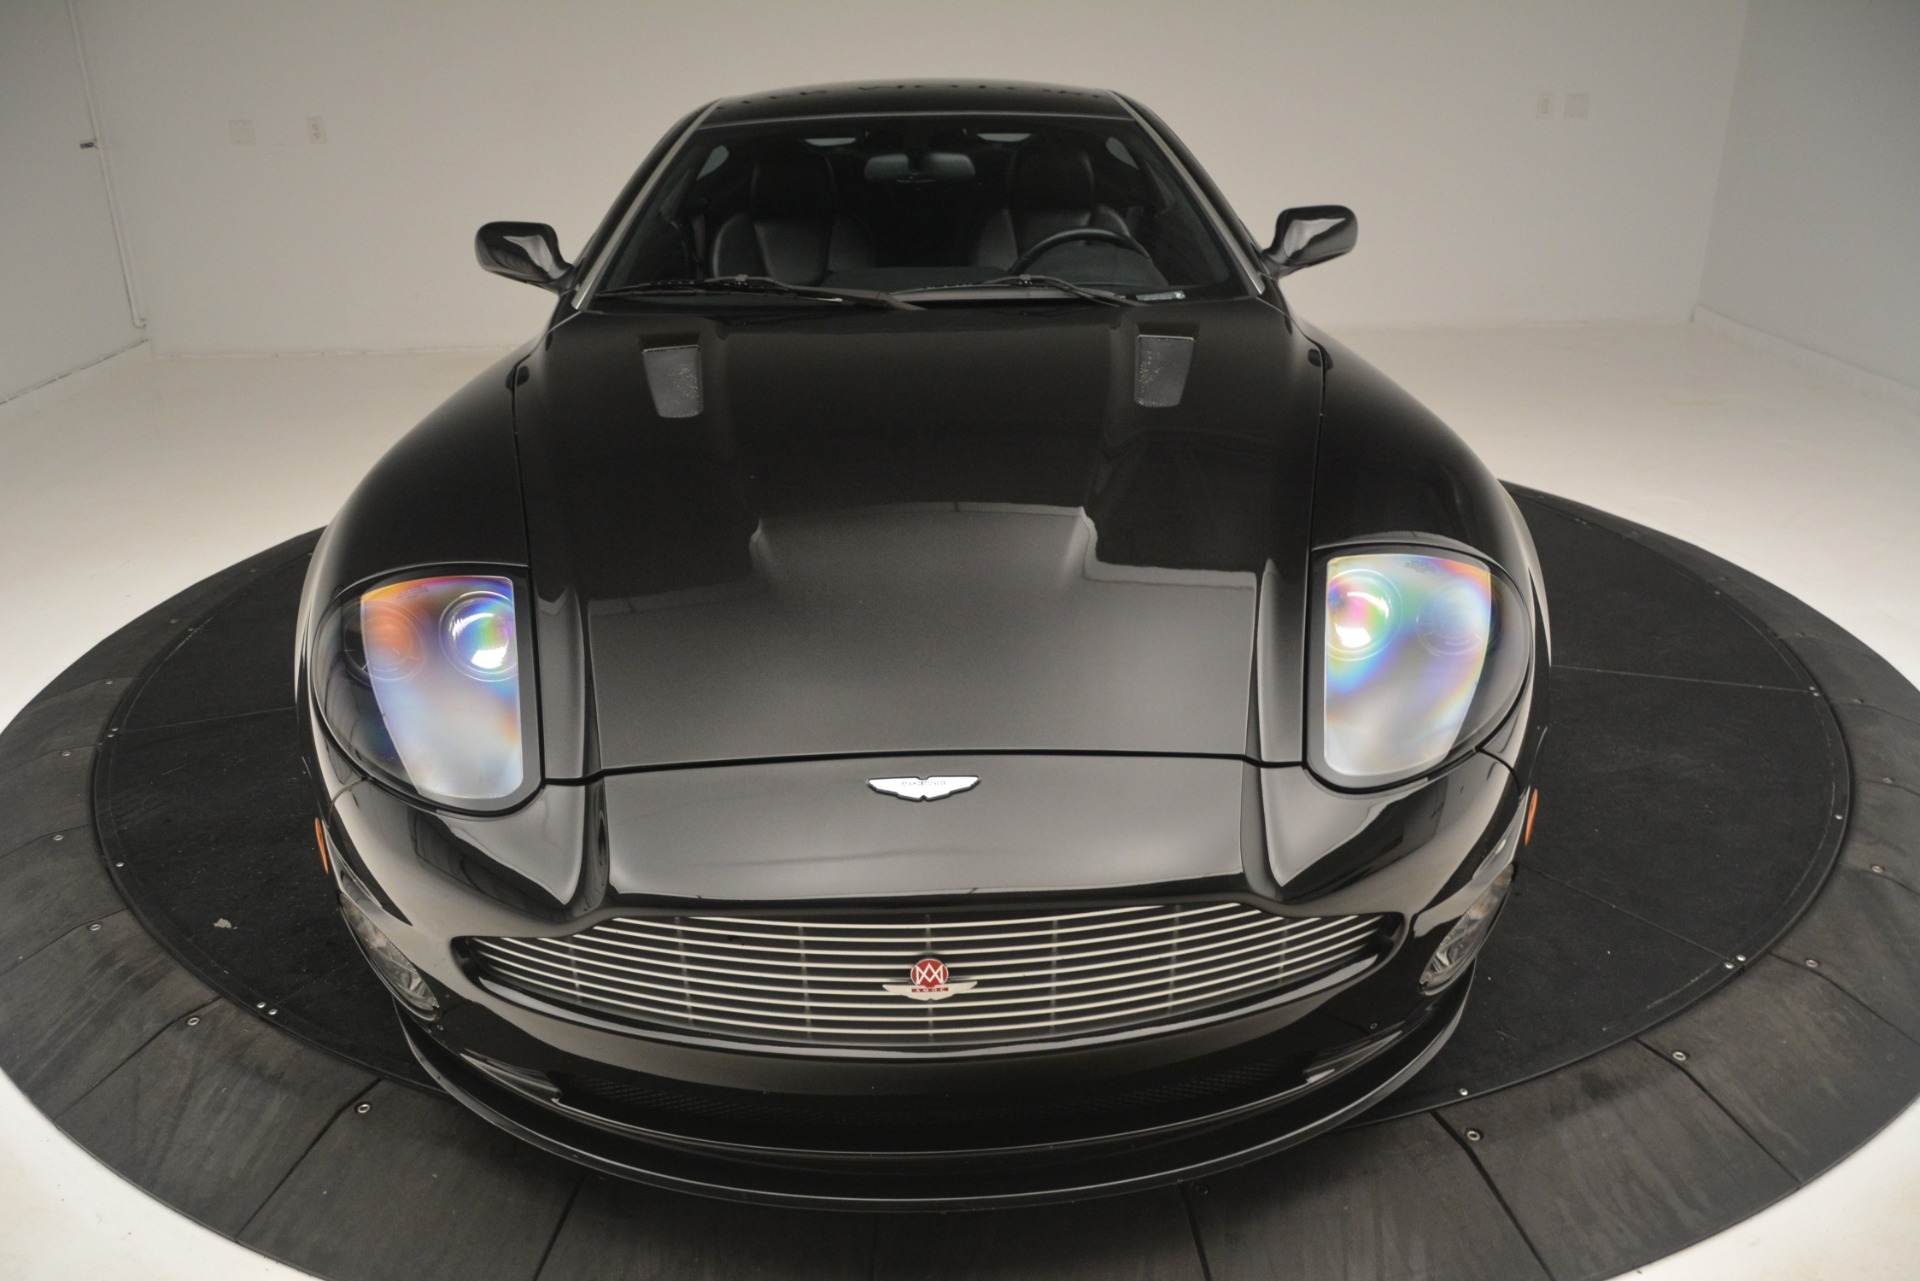 Used 2004 Aston Martin V12 Vanquish  For Sale In Westport, CT 3160_p10